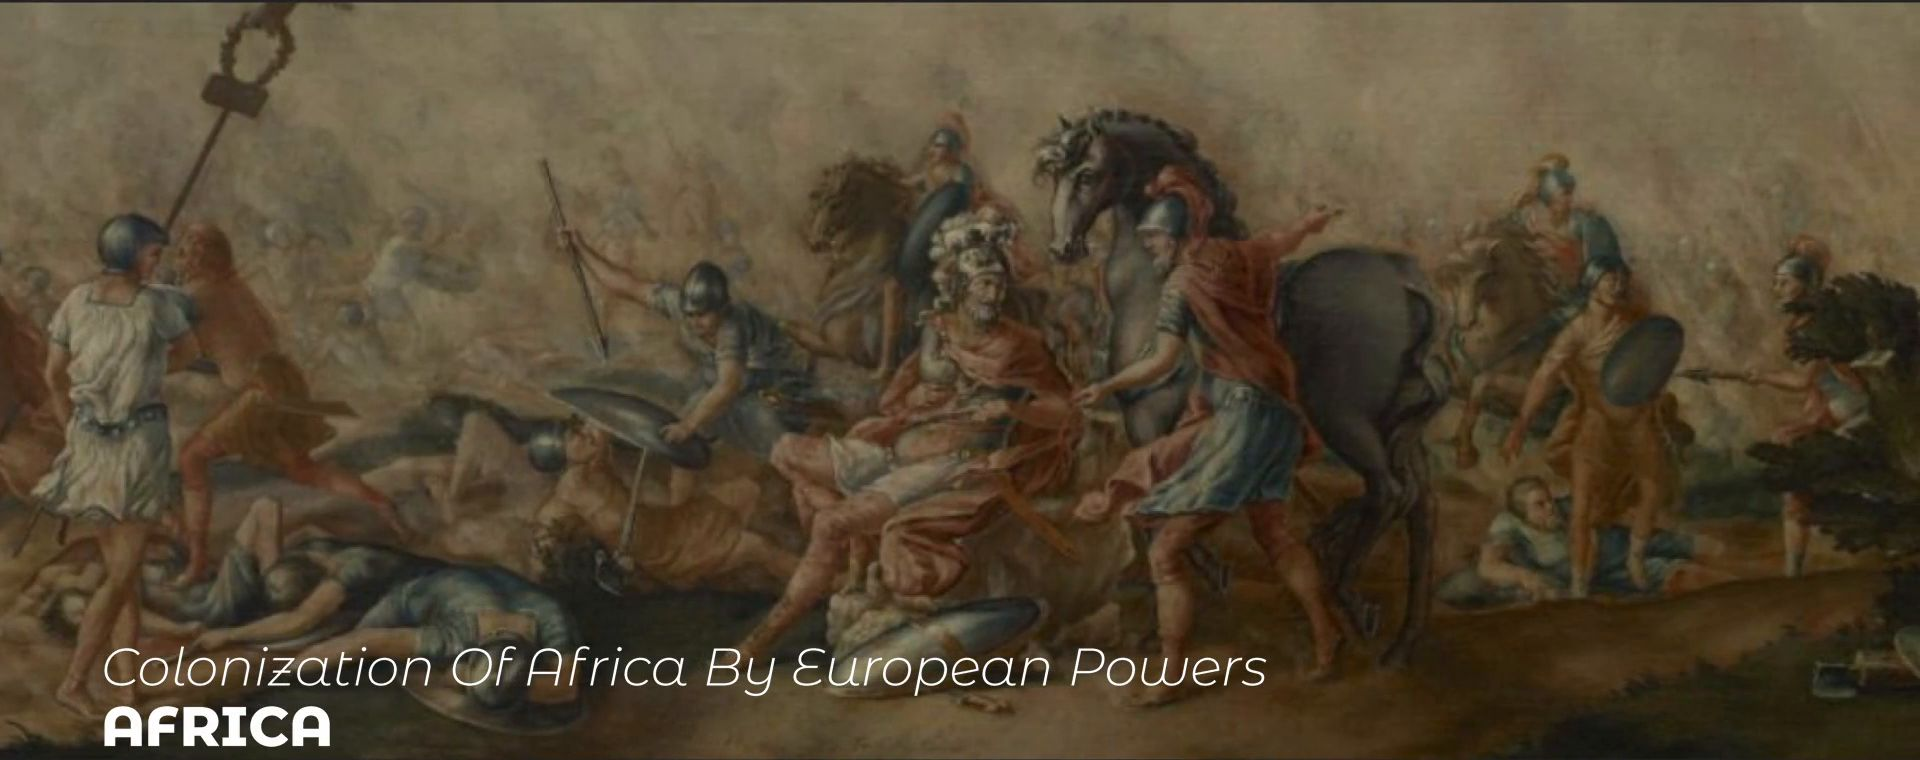 COLONIZATION OF AFRICA BY EUROPEAN POWERS